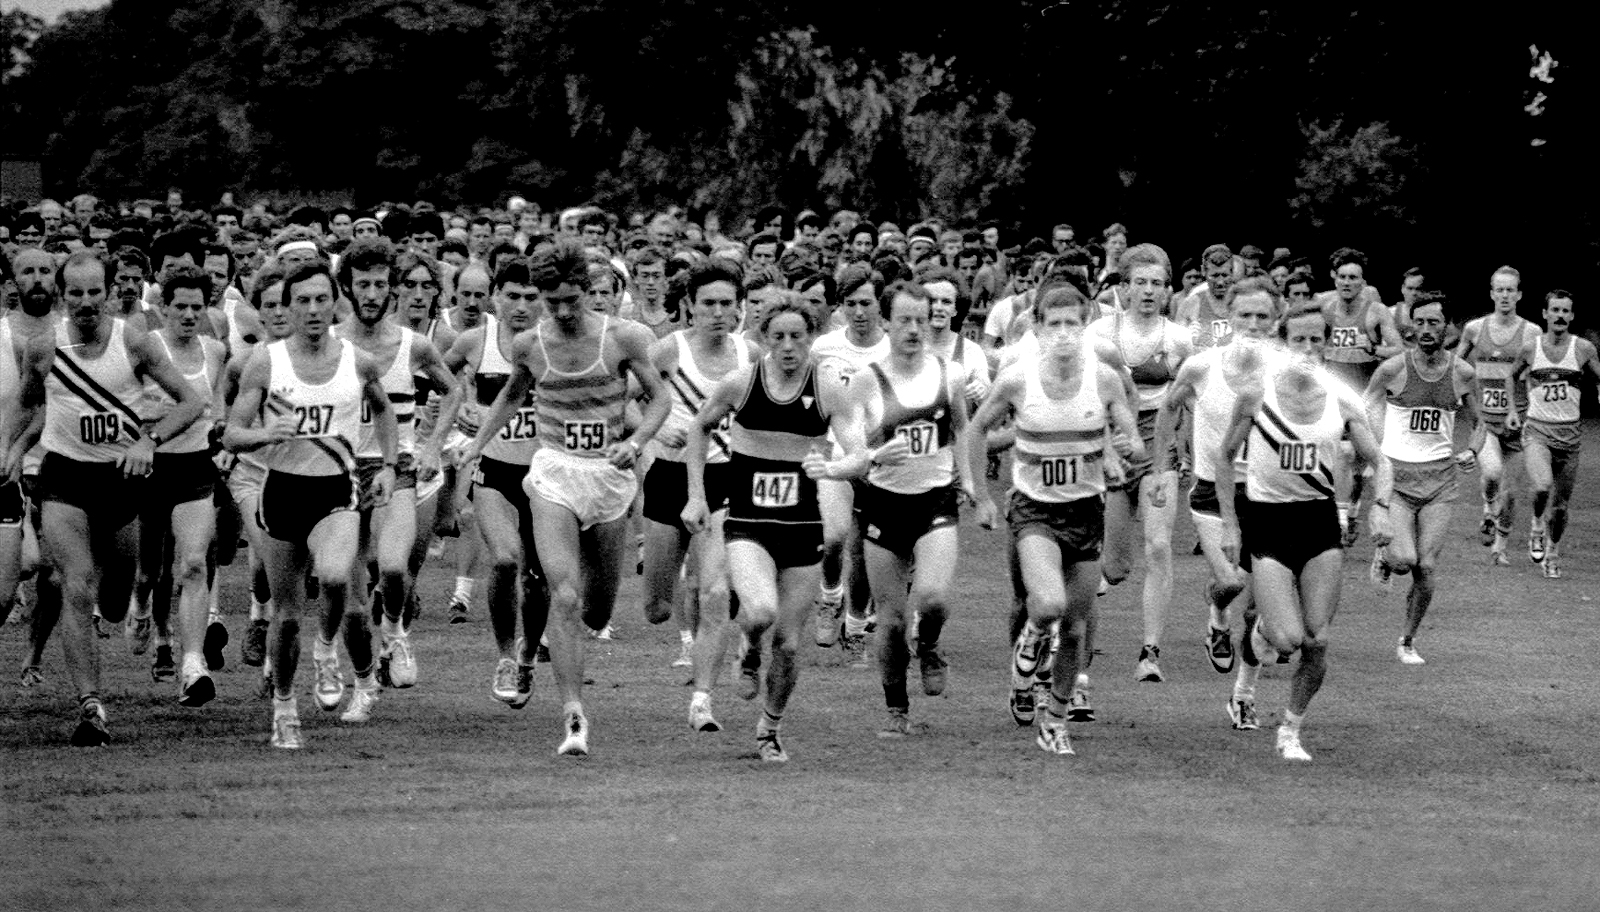 Edinburgh 10 - Cramond - Start - 1984